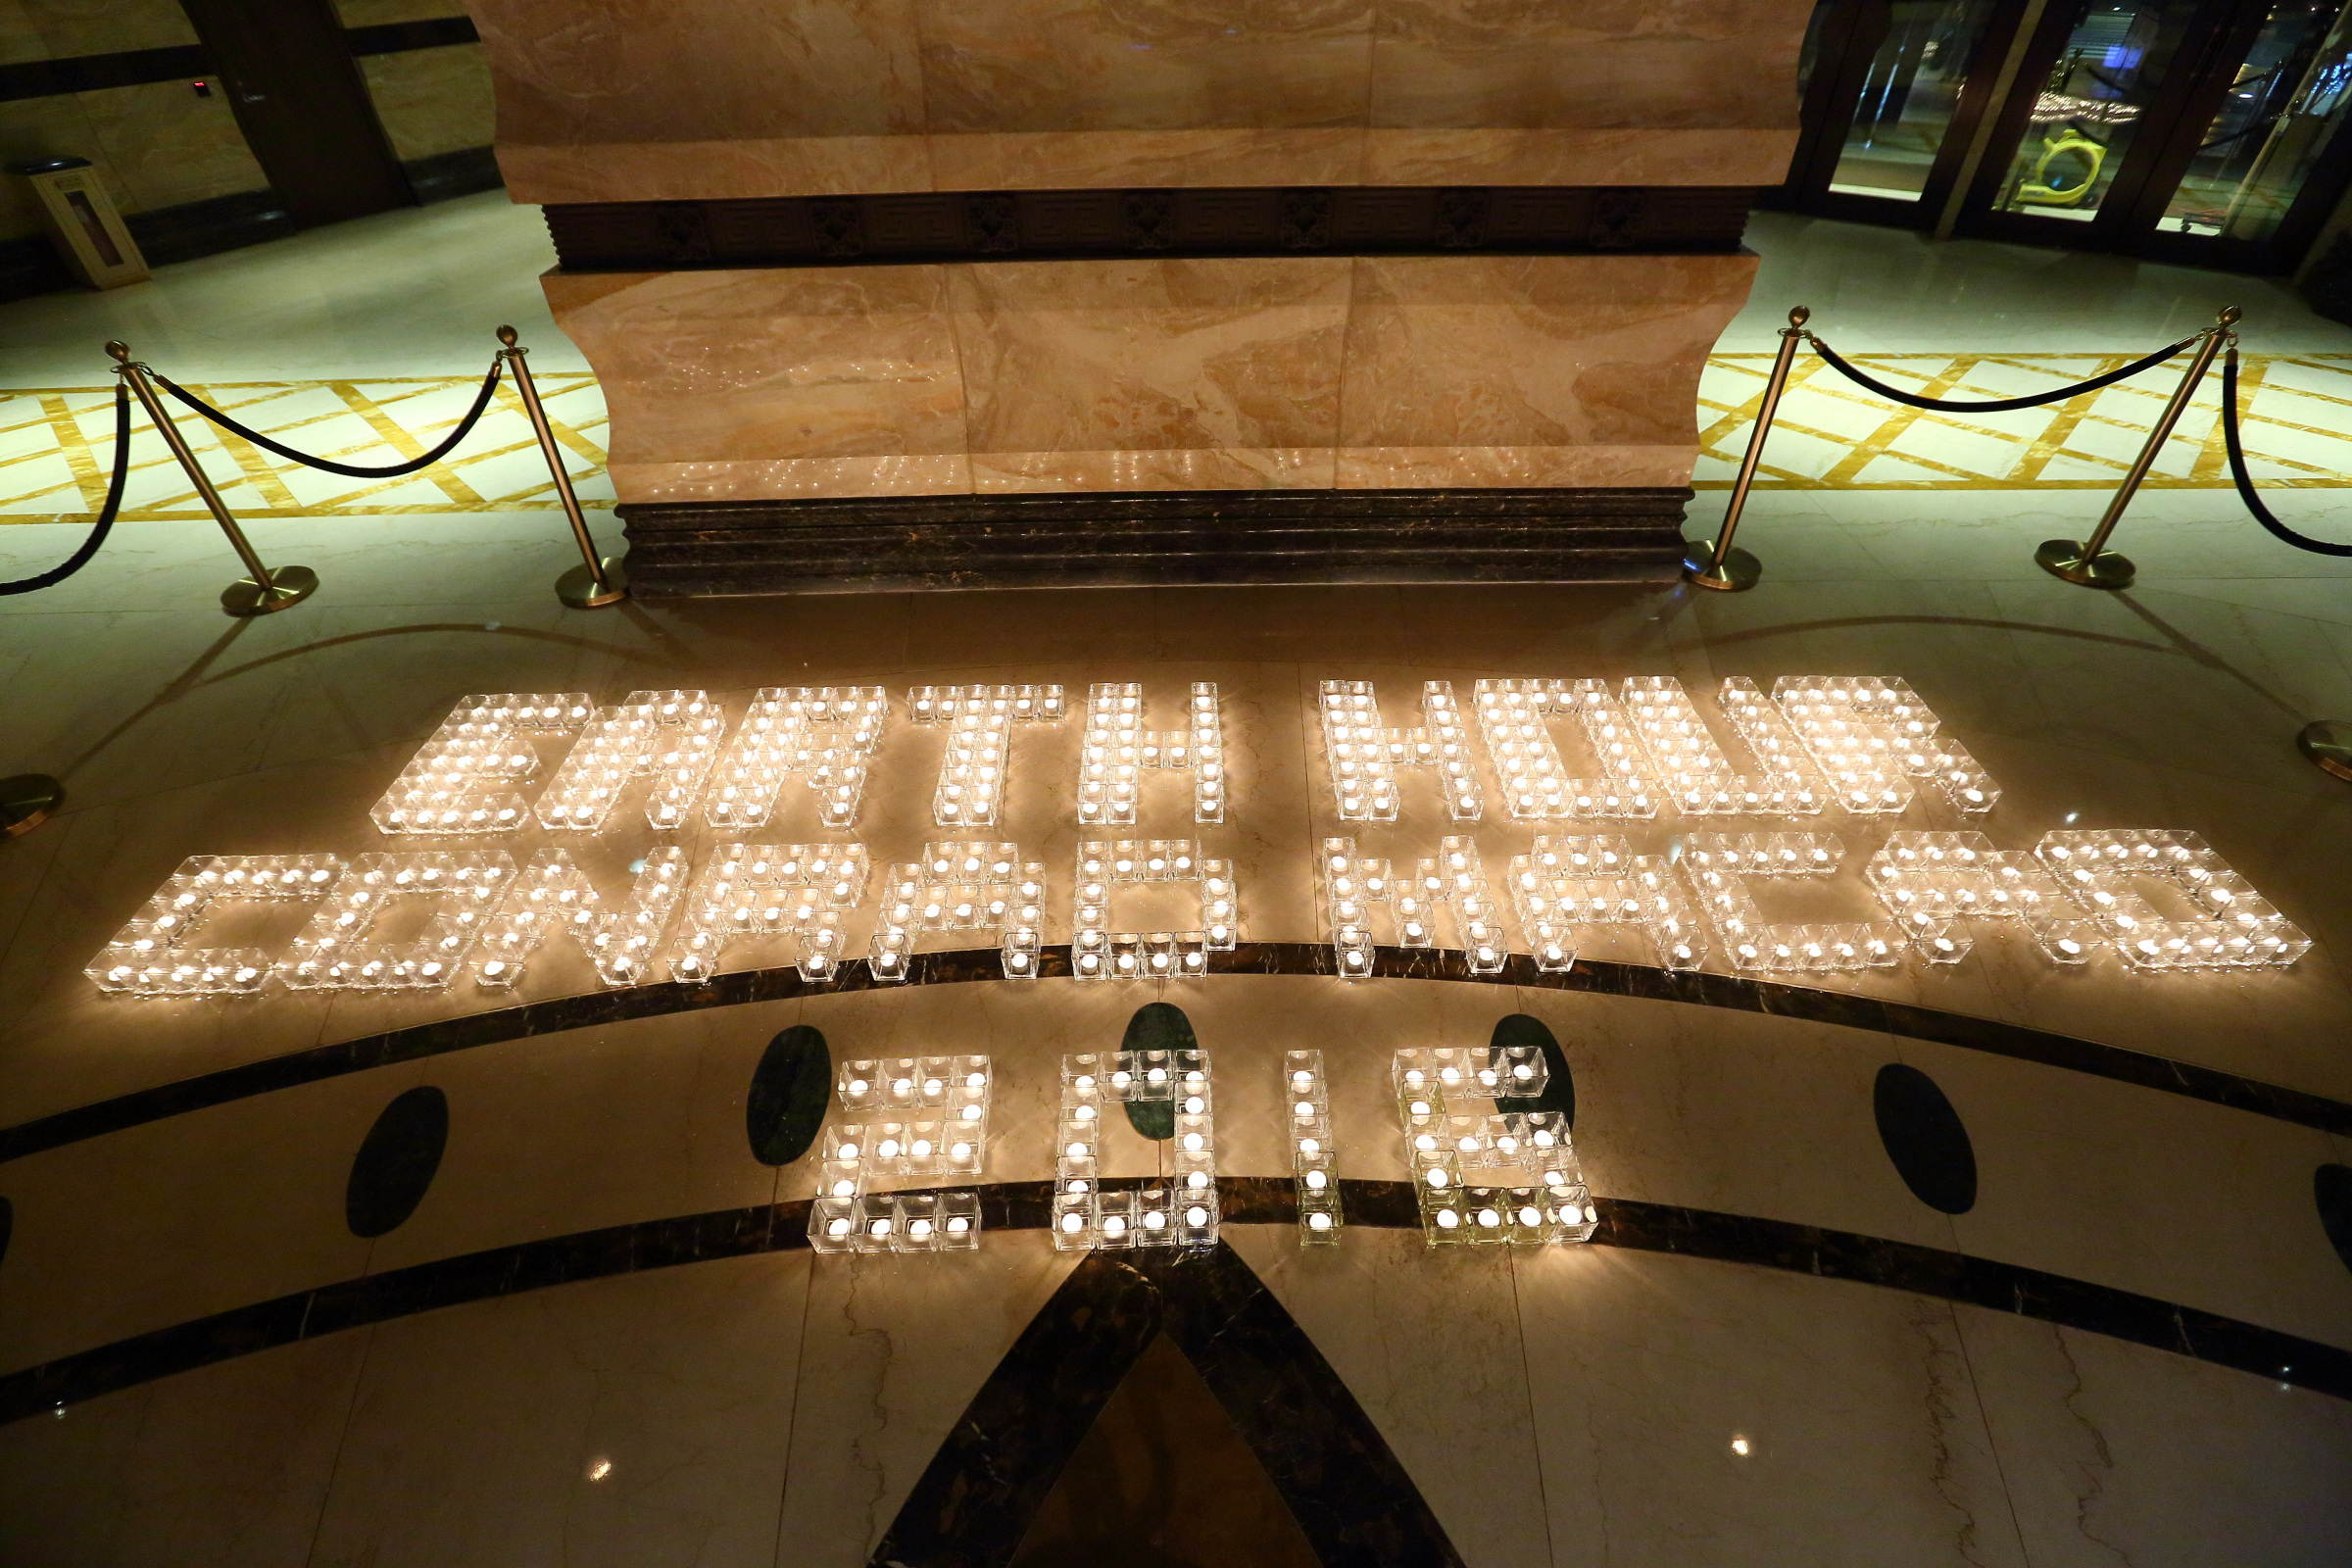 Conrad Macao celebrated Earth Hour 2016